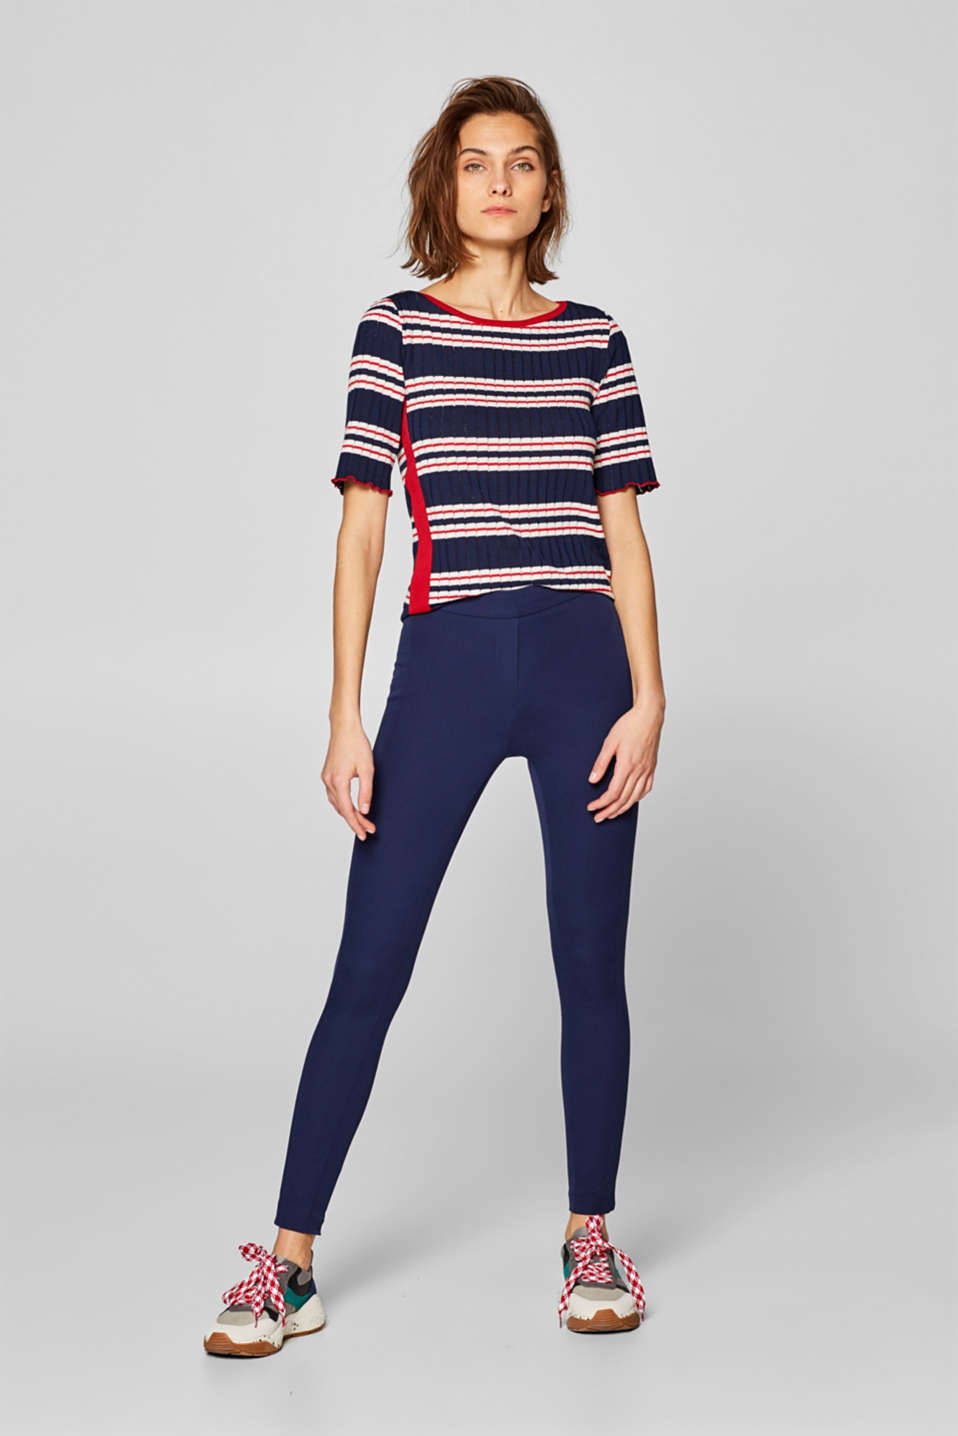 Esprit - Firmer stretch trousers with striped elasticated waistband